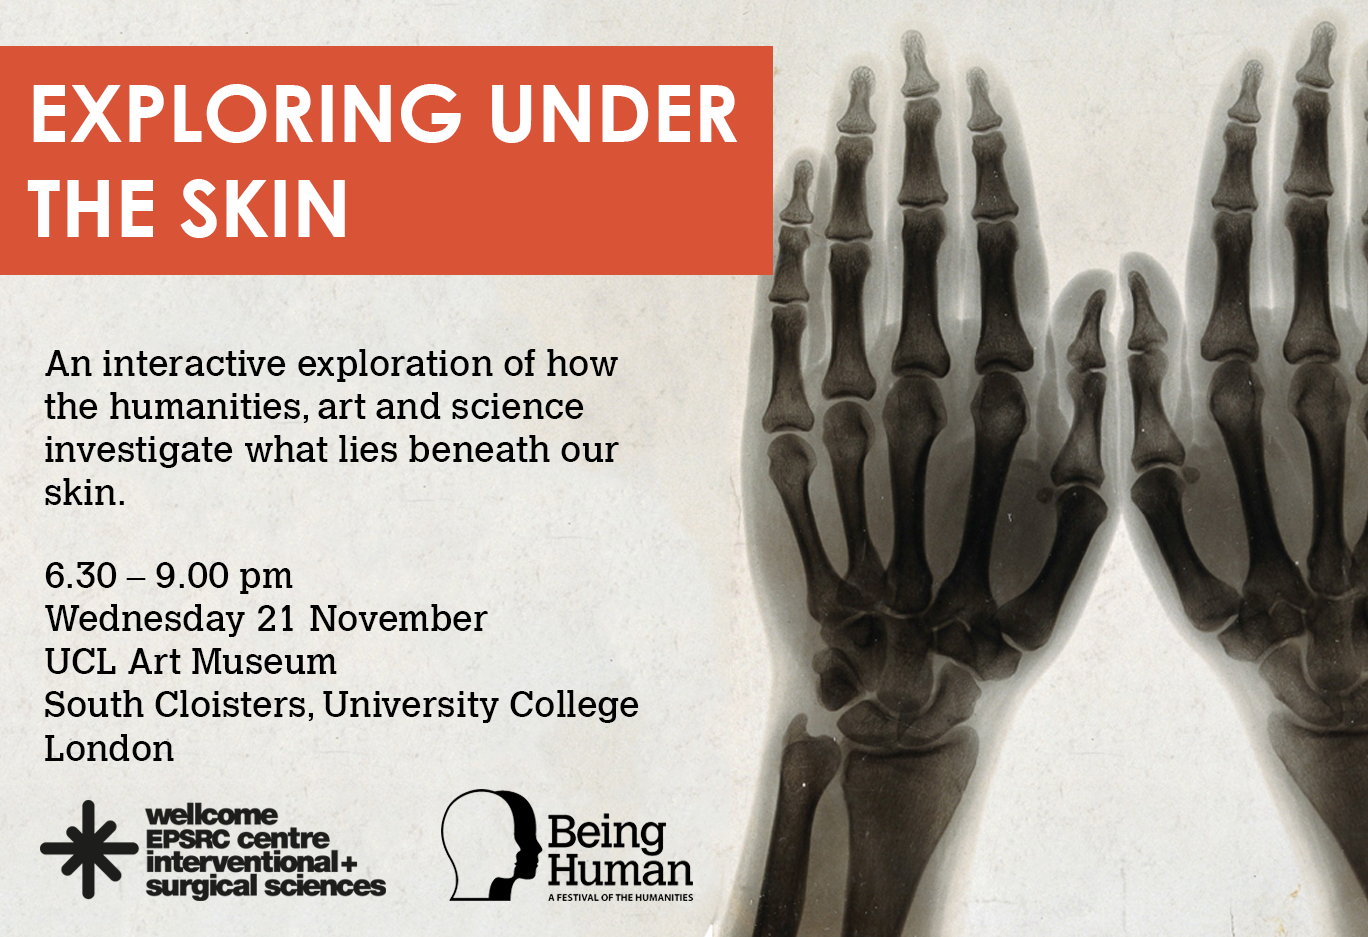 What Makes a Human: Exploring Under the Skin